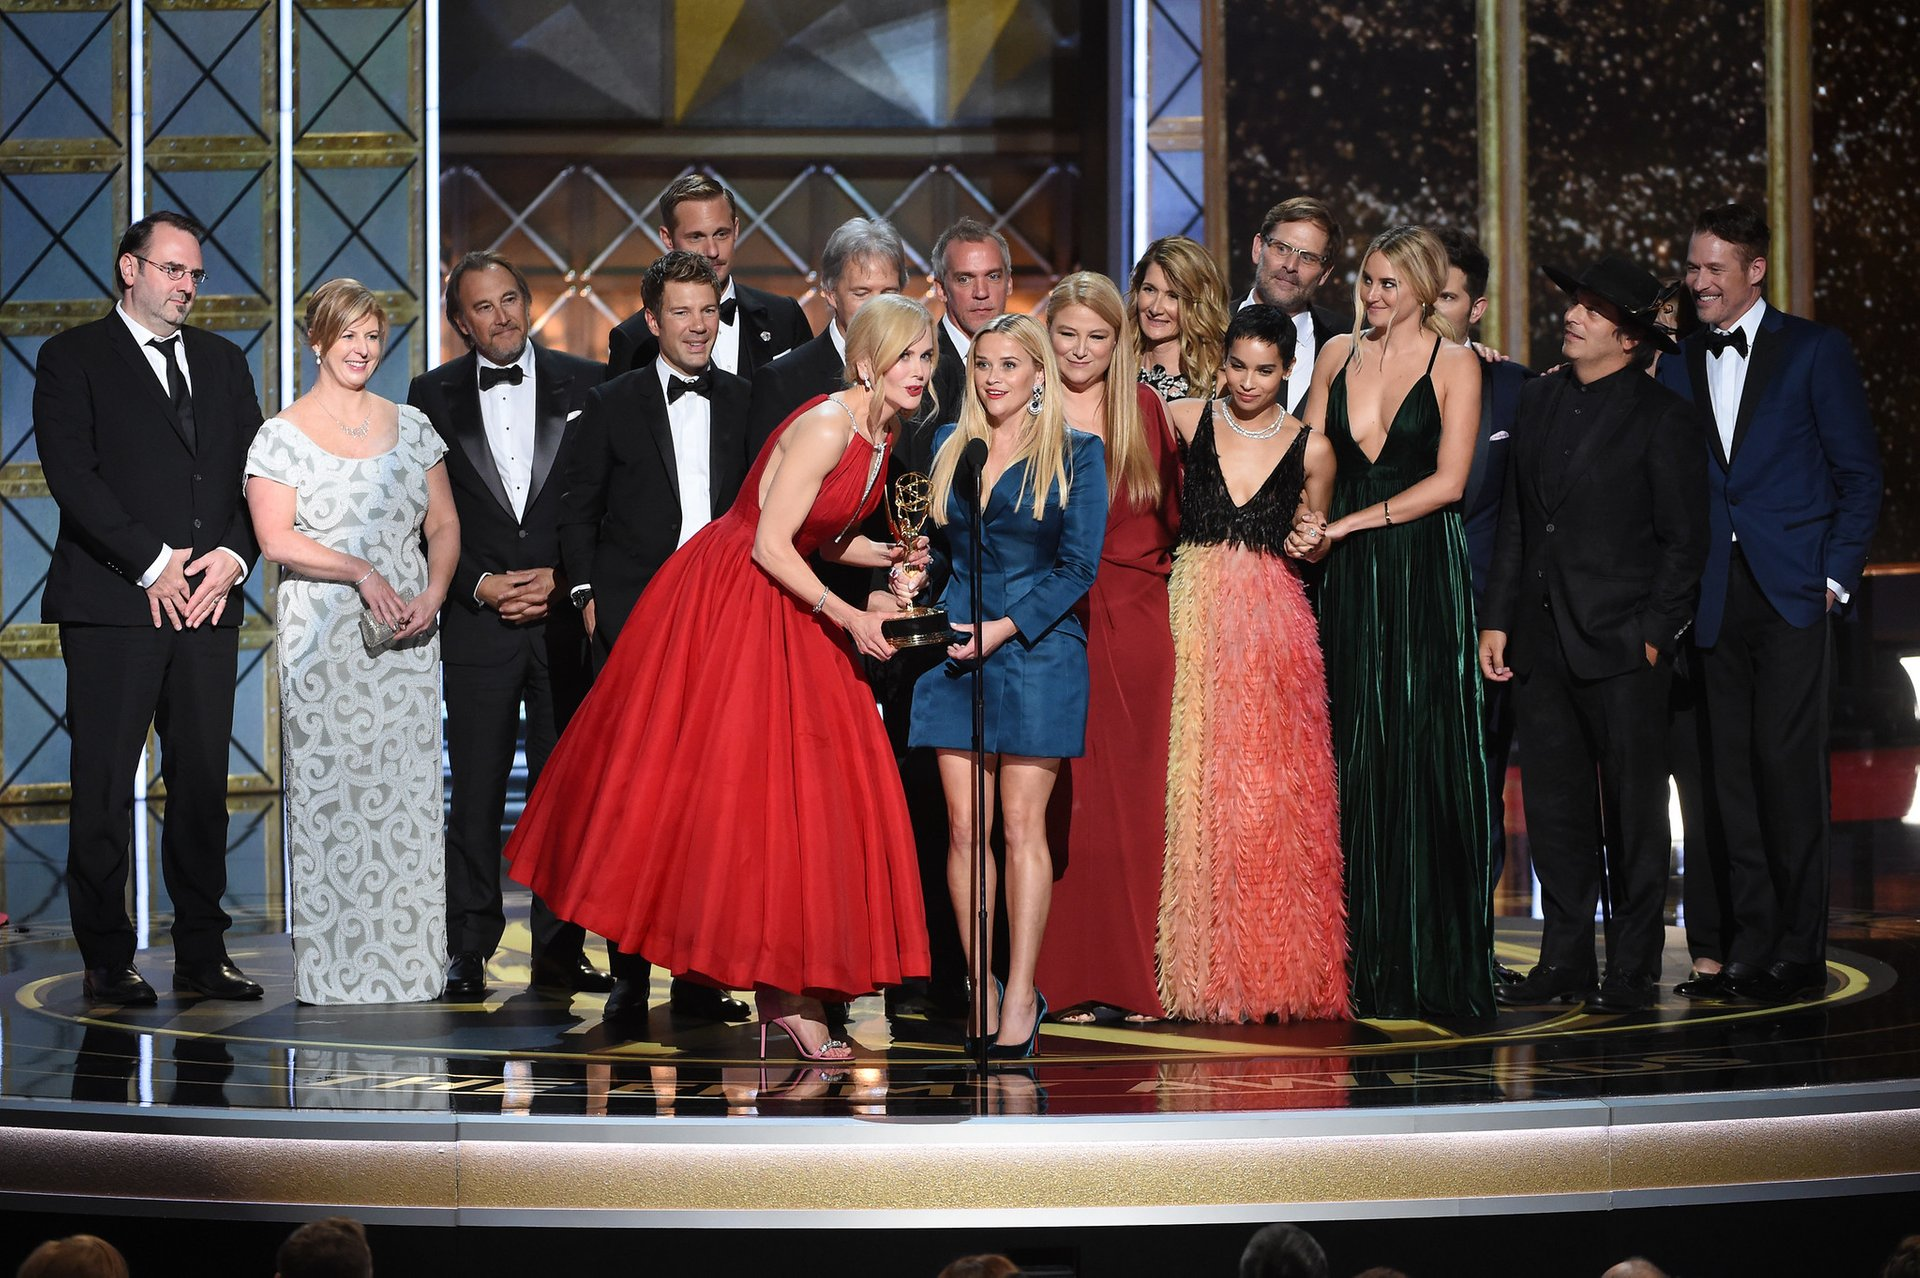 Emmy Awards in Los Angeles - Best Season 2020